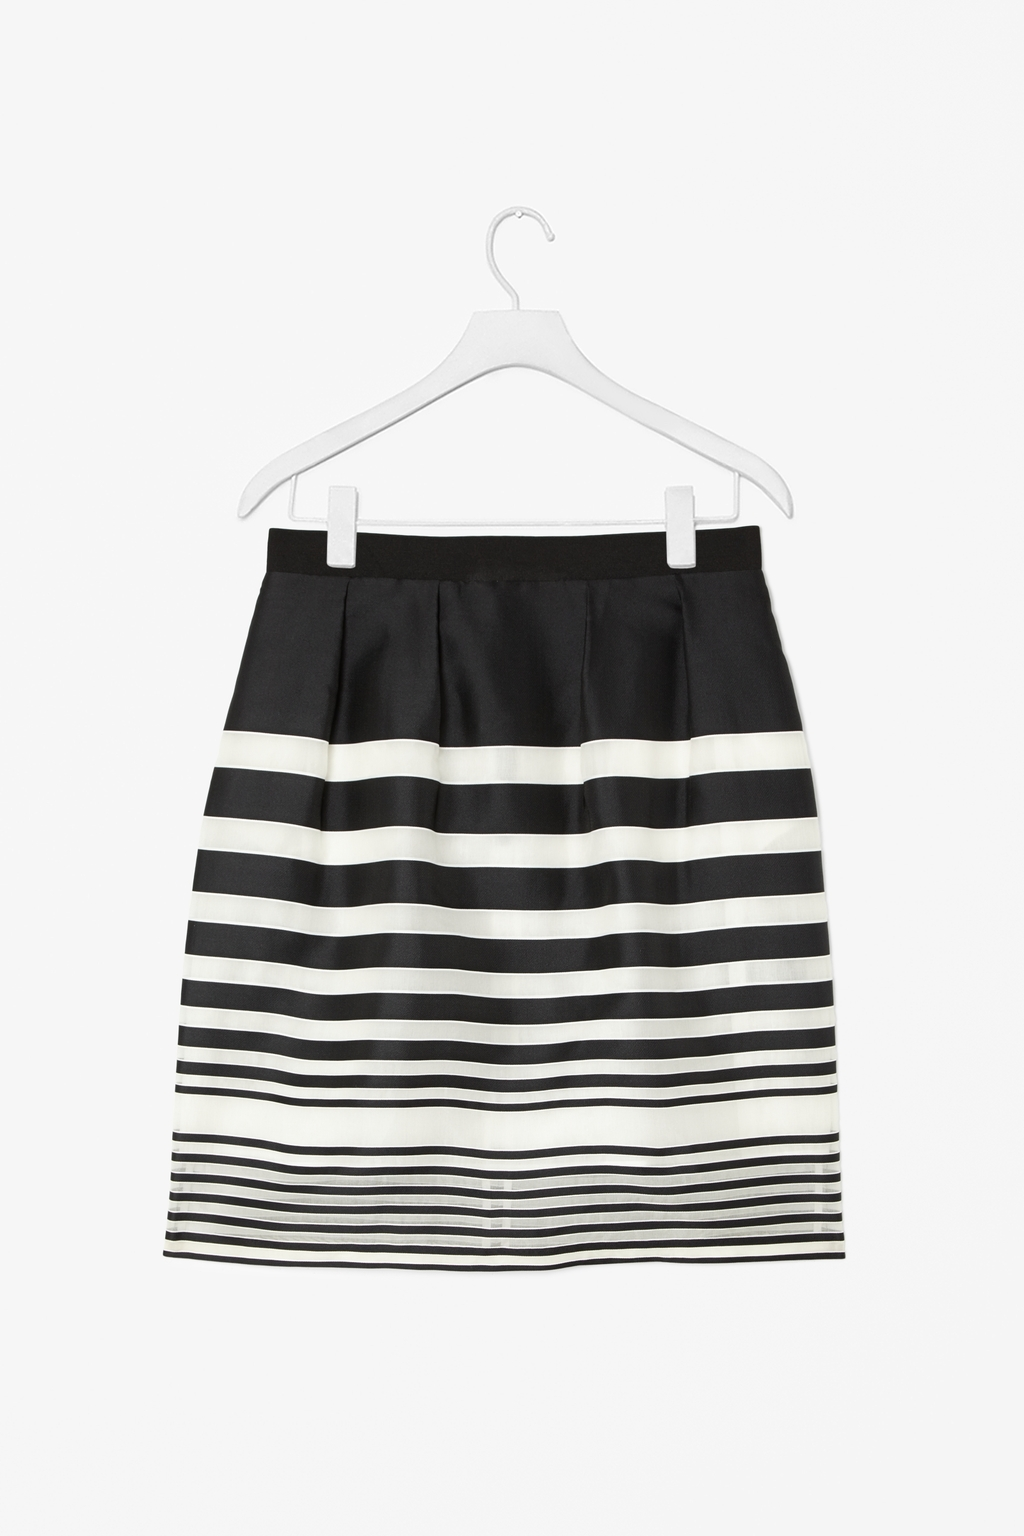 Sheer Stripe Skirt - style: straight; waist: high rise; secondary colour: white; predominant colour: black; occasions: evening, occasion, creative work; length: just above the knee; fibres: silk - mix; hip detail: adds bulk at the hips; fit: straight cut; pattern type: fabric; texture group: other - light to midweight; season: s/s 2014; trends: monochrome; pattern size: standard (bottom); pattern: horizontal stripes (bottom)